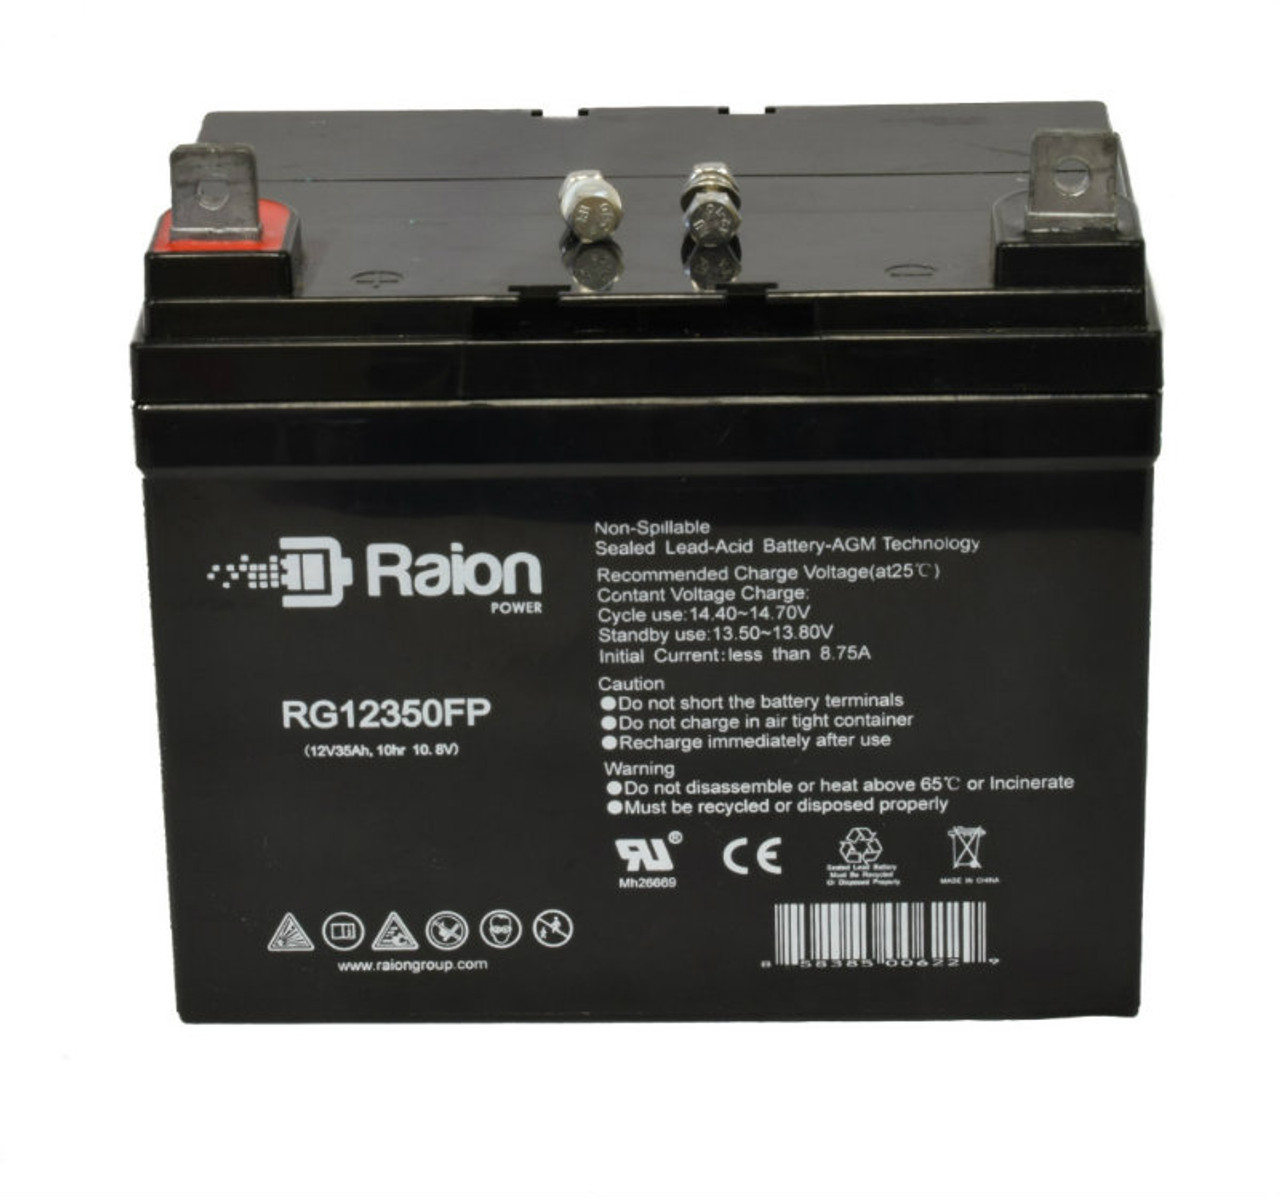 RG12350FP Sealed Lead Acid Battery Pack For Everest & Jennings 14 Inch Belt Drive Chairs Mobility Scooter